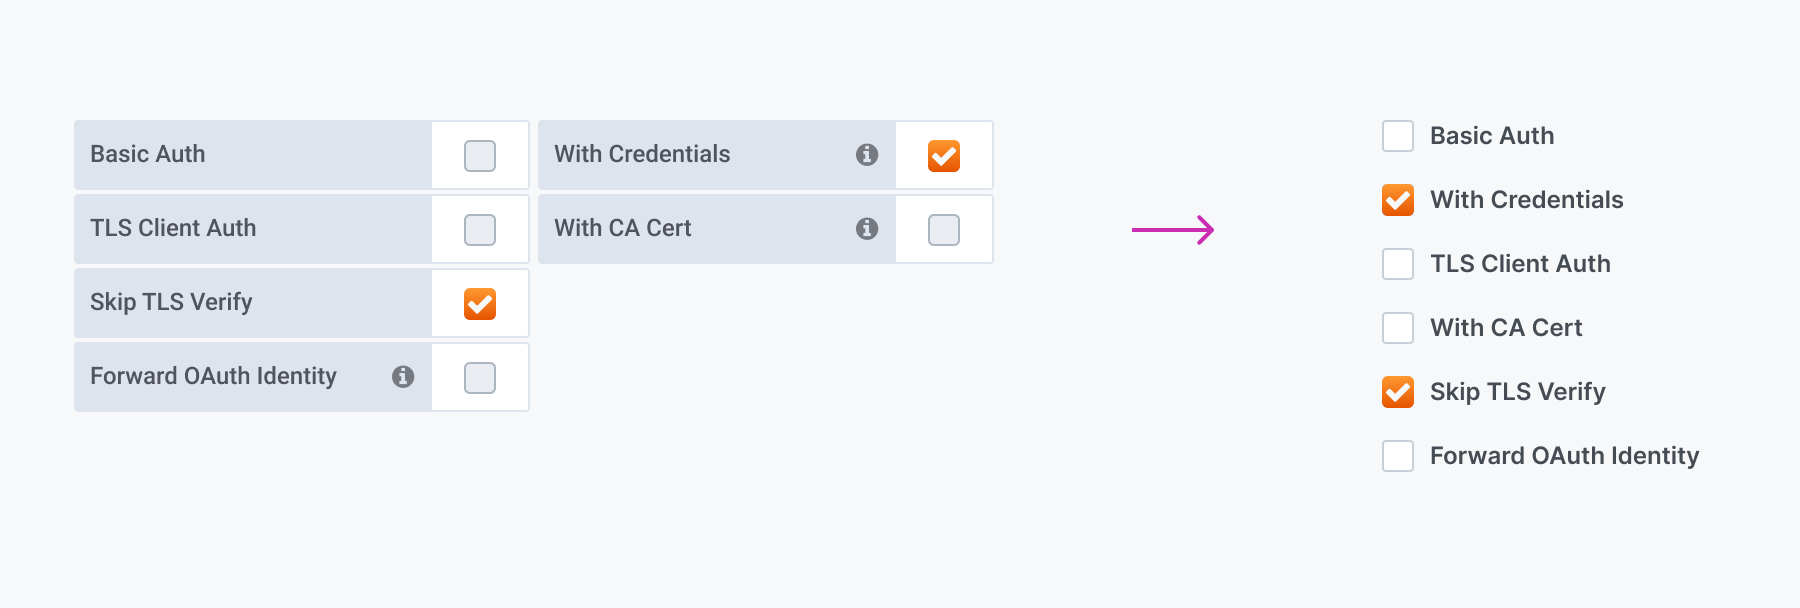 Top Aligned Form With Checkboxes